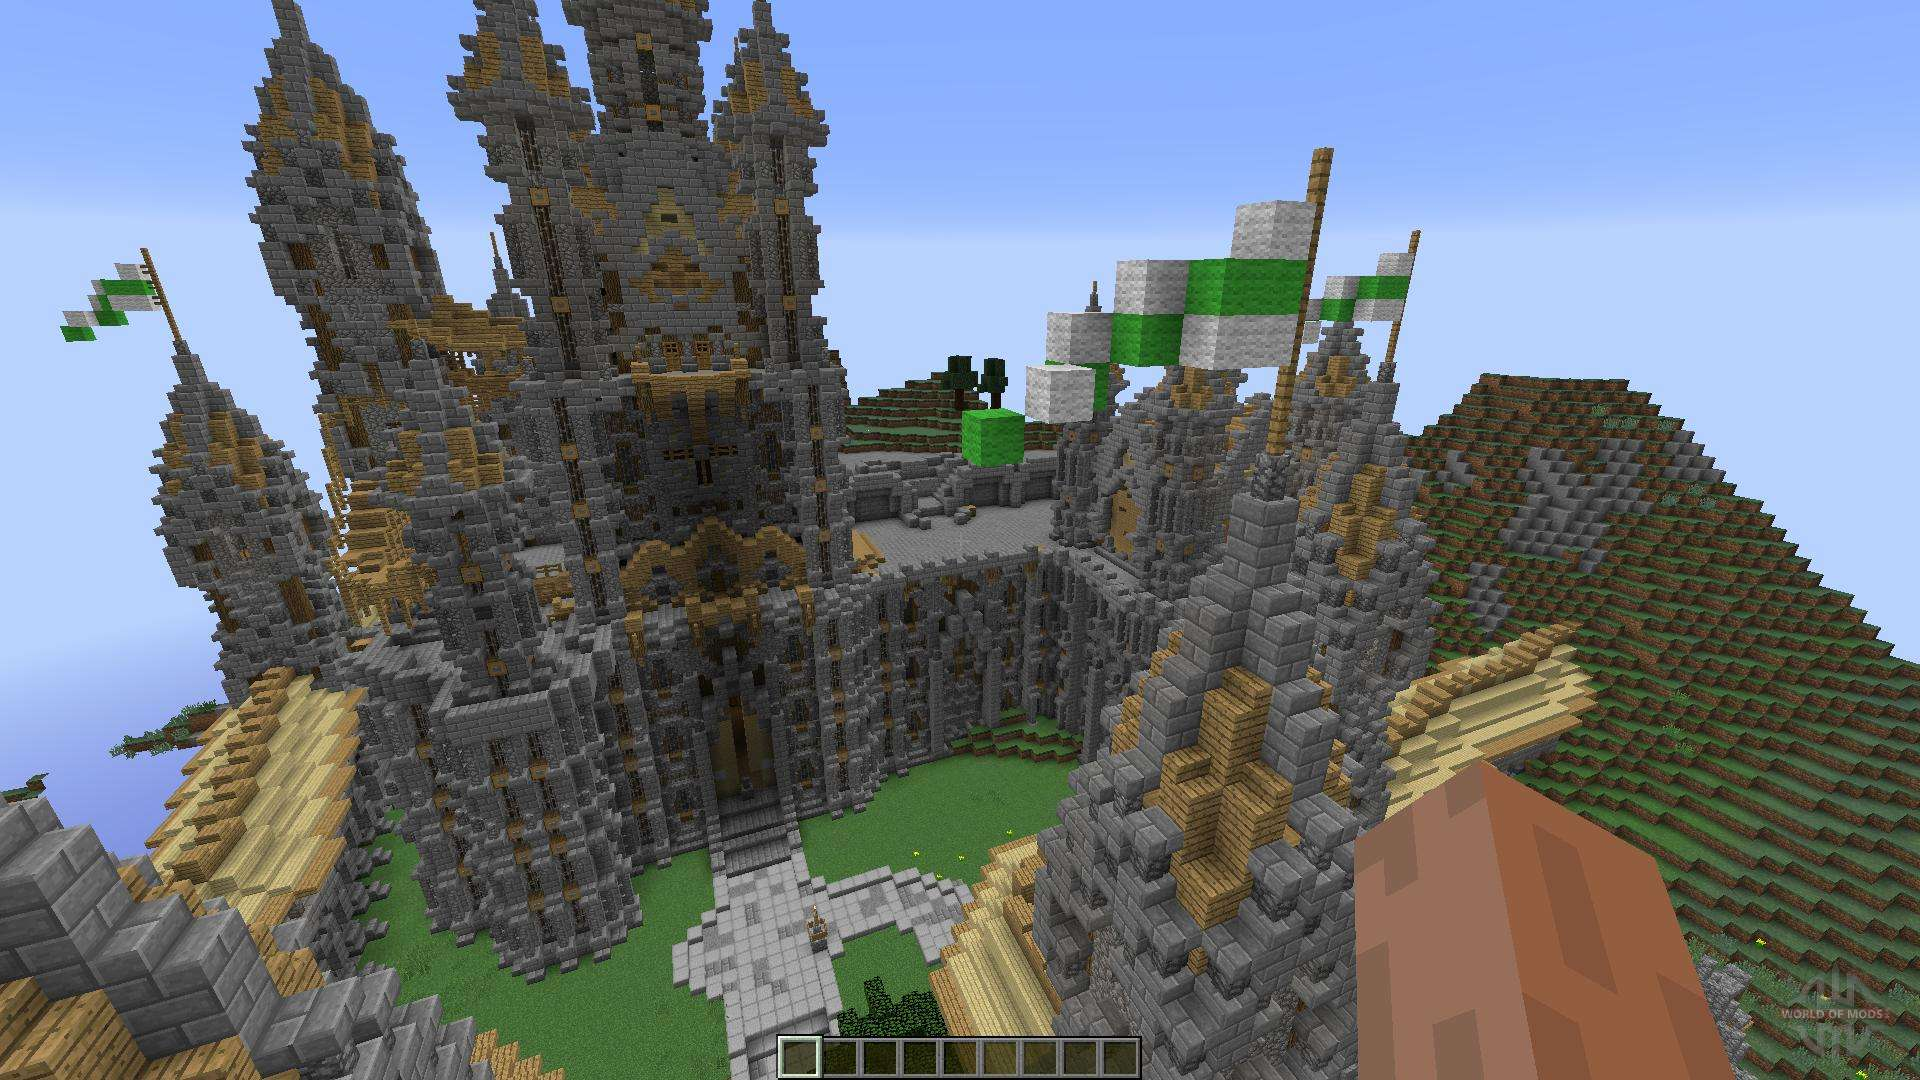 Download options for Minecraft: Java Edition Minecraft